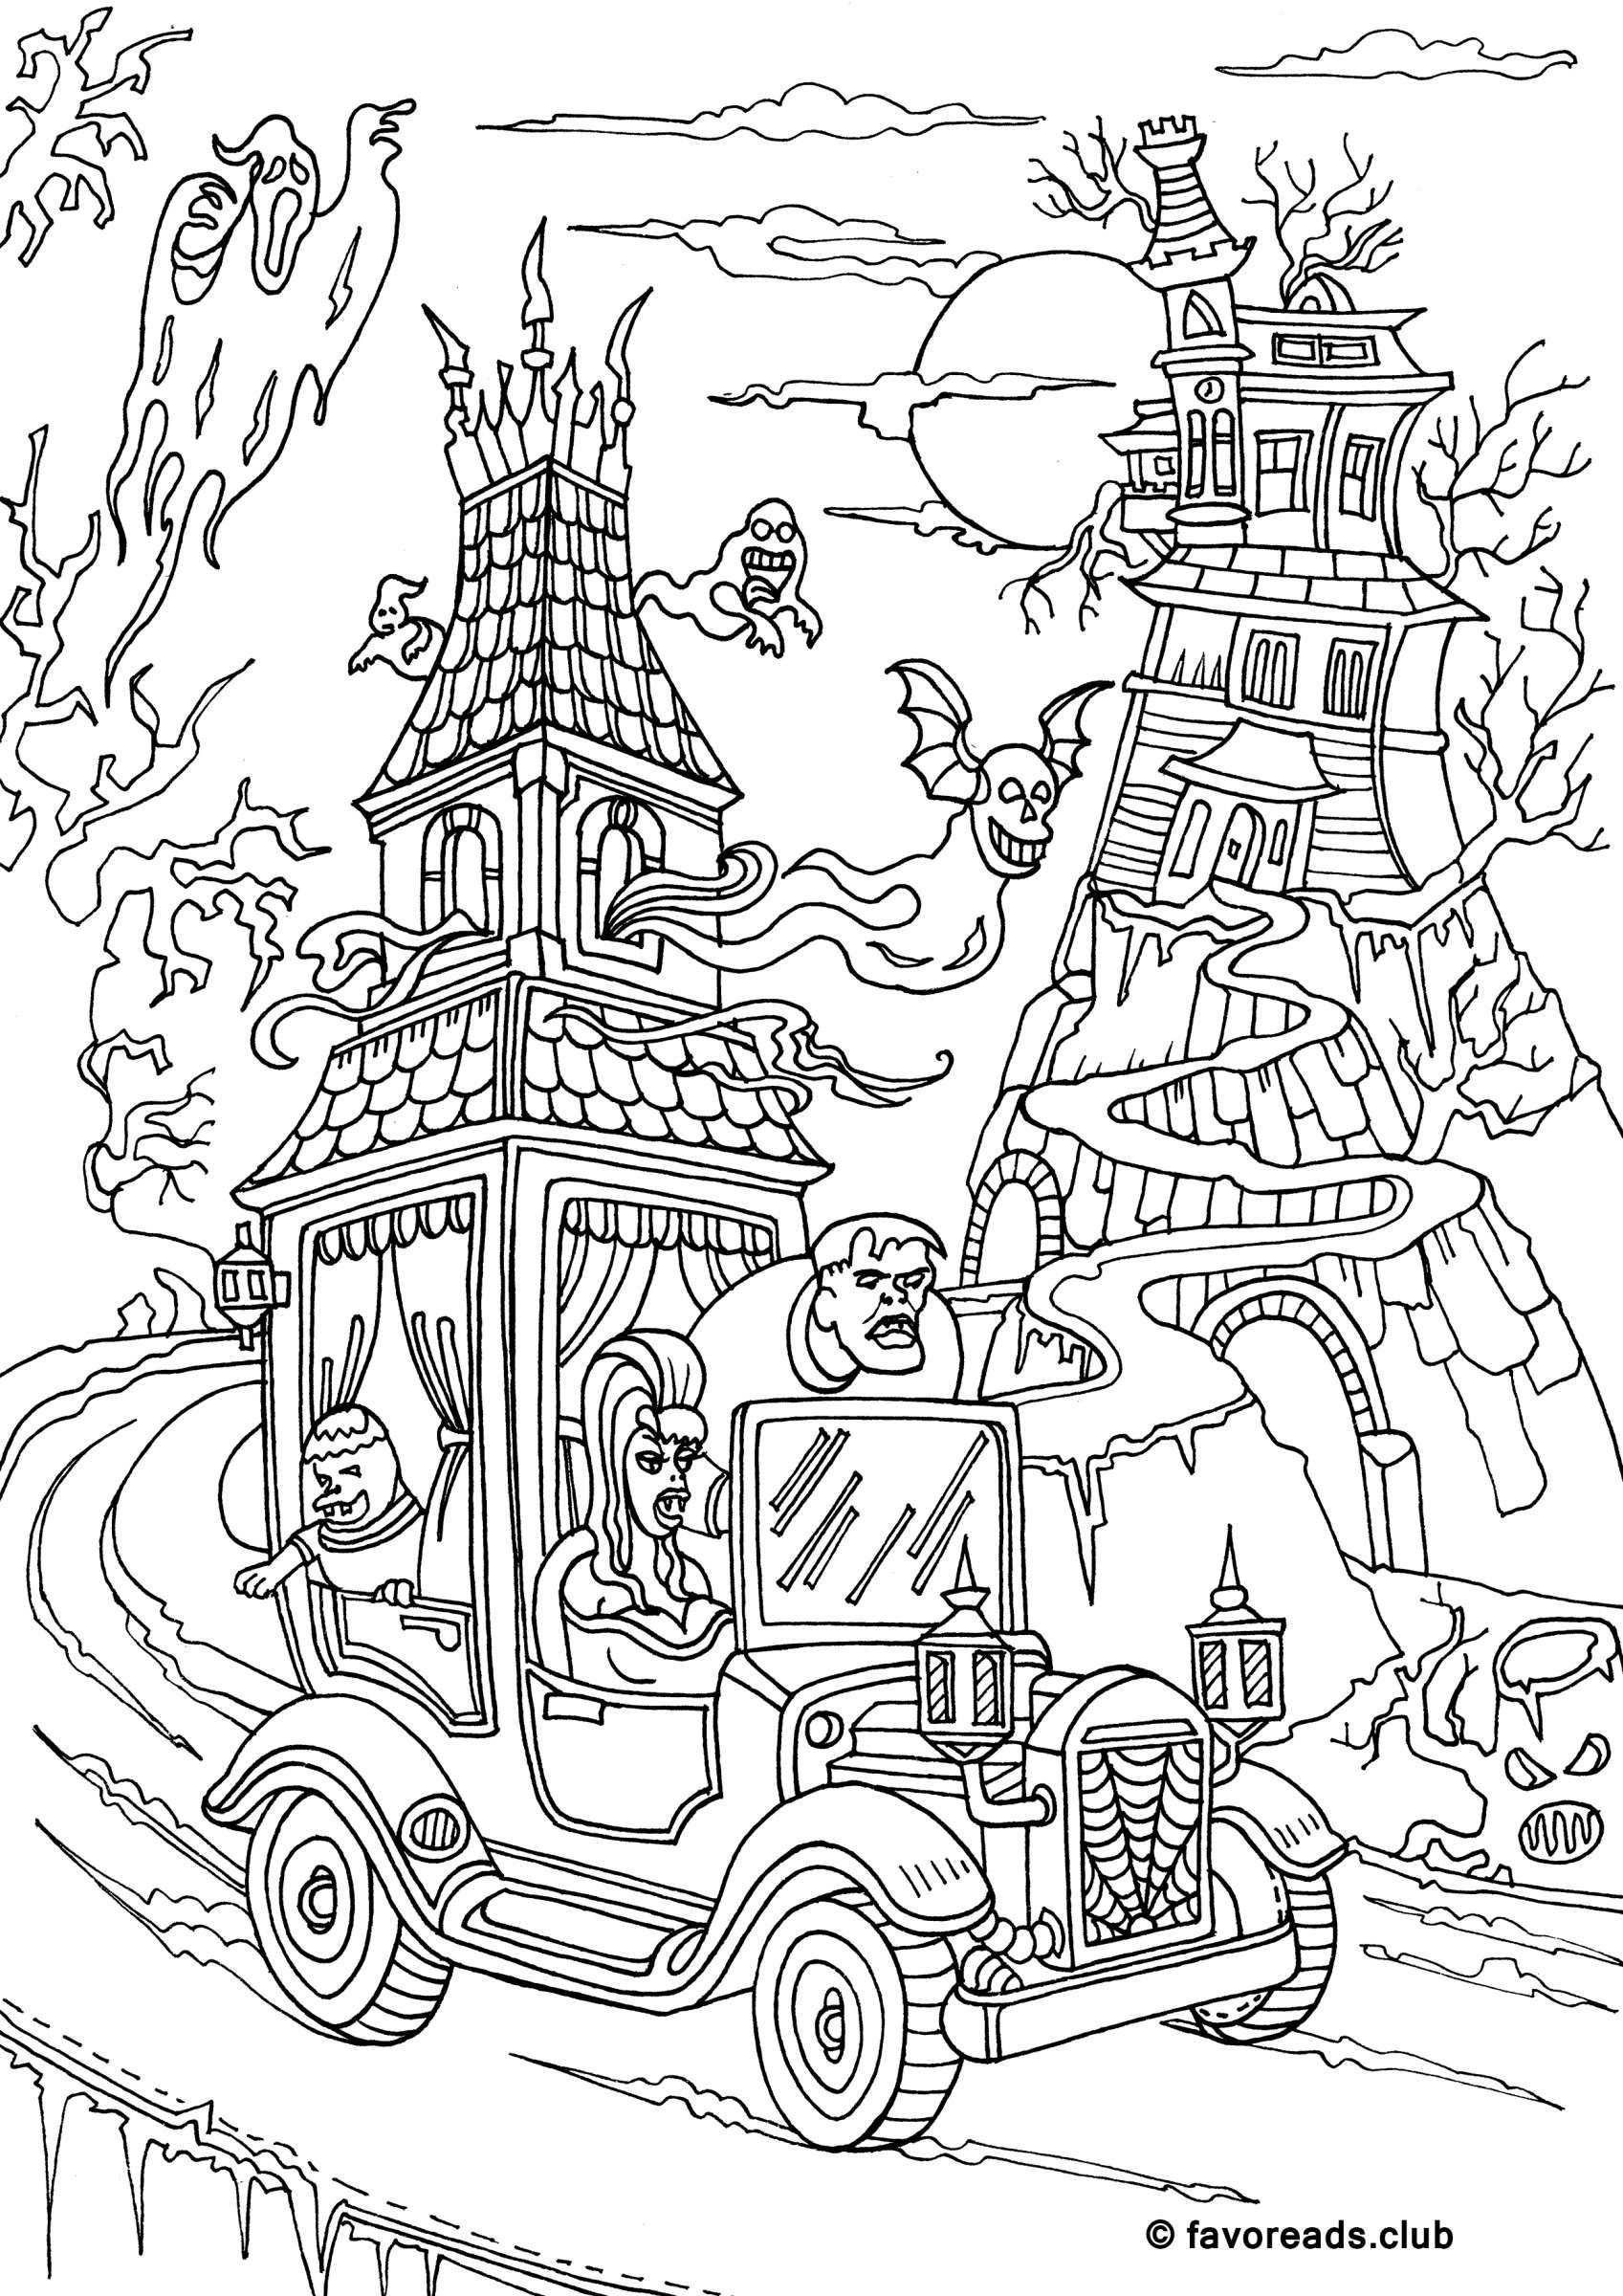 Calm the F Down Coloring Book Pages  Gallery 13n - Free Download